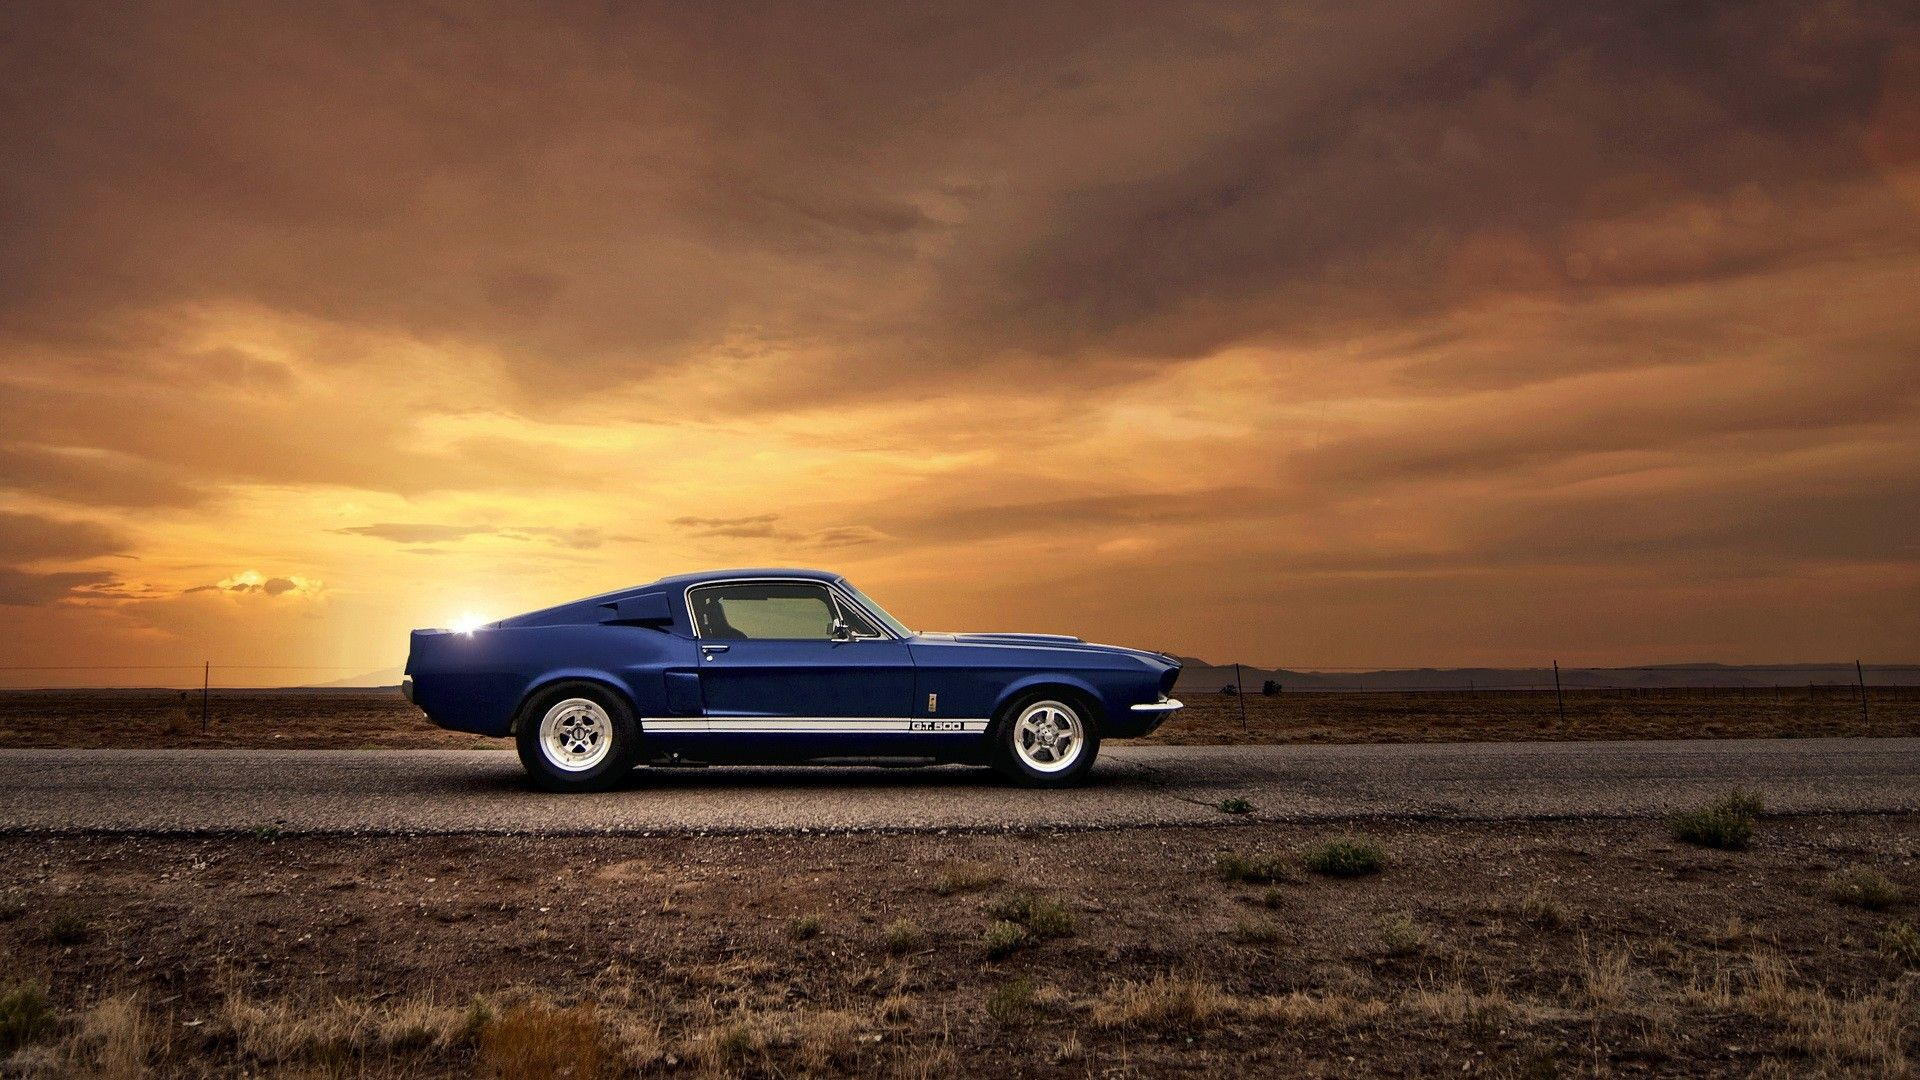 Mustang Wallpaper Images B6g Muscle Cars American Muscle Cars